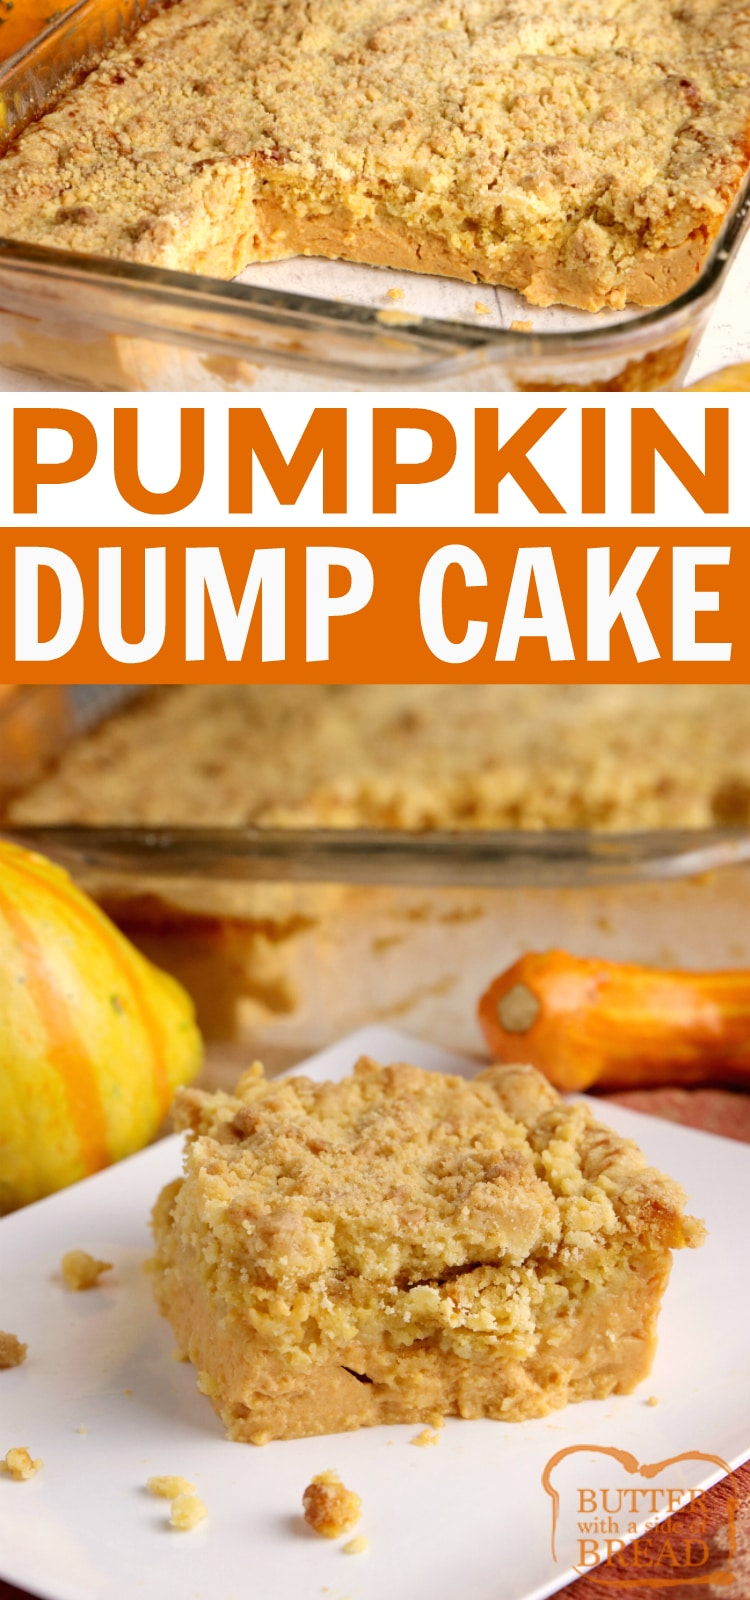 This pumpkin dump cake is so easy to make and is made with only 5 ingredients! This pumpkin cake recipe tastes like pumpkin pie and makes enough to feed a crowd. Delicious warm or cold - the perfect fall dessert!